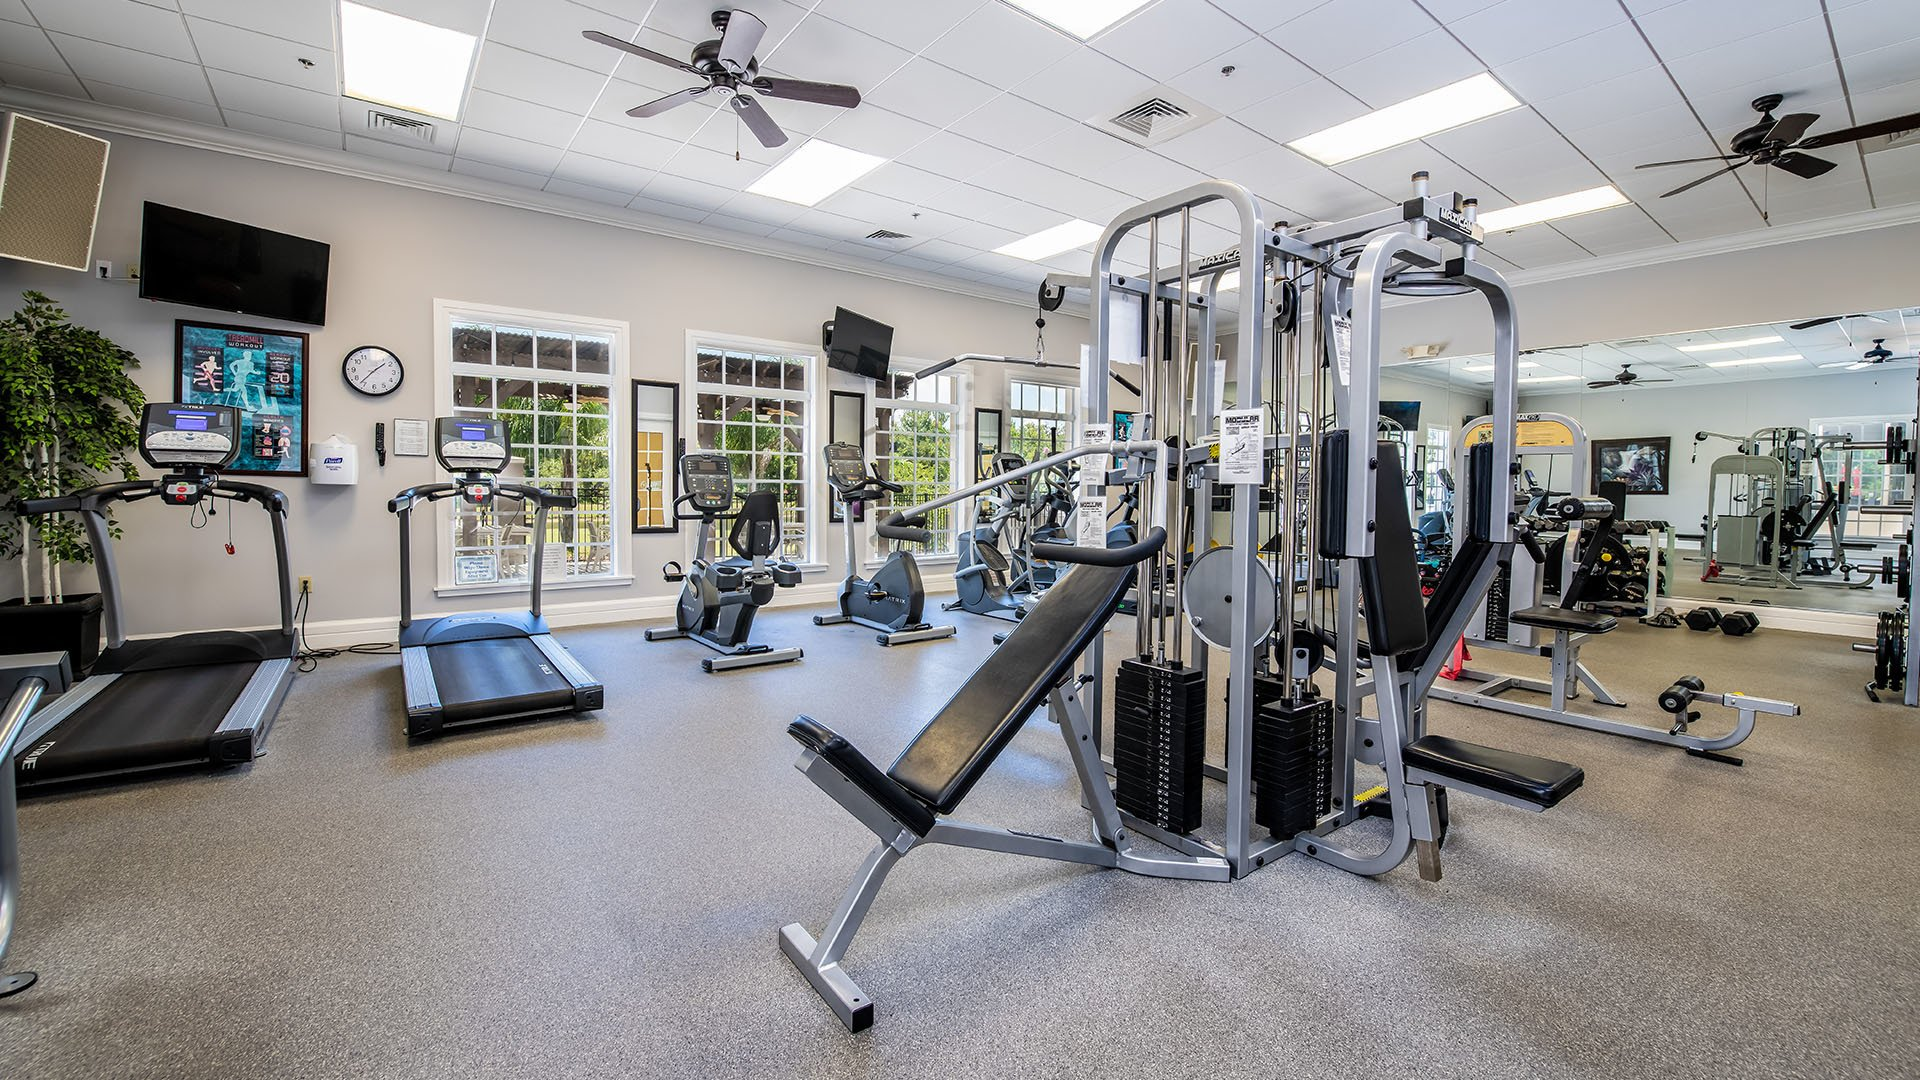 Riverside Club 55+ Golf, Marina and Manufactured Homes Community Fitness Center in Ruskin, FL